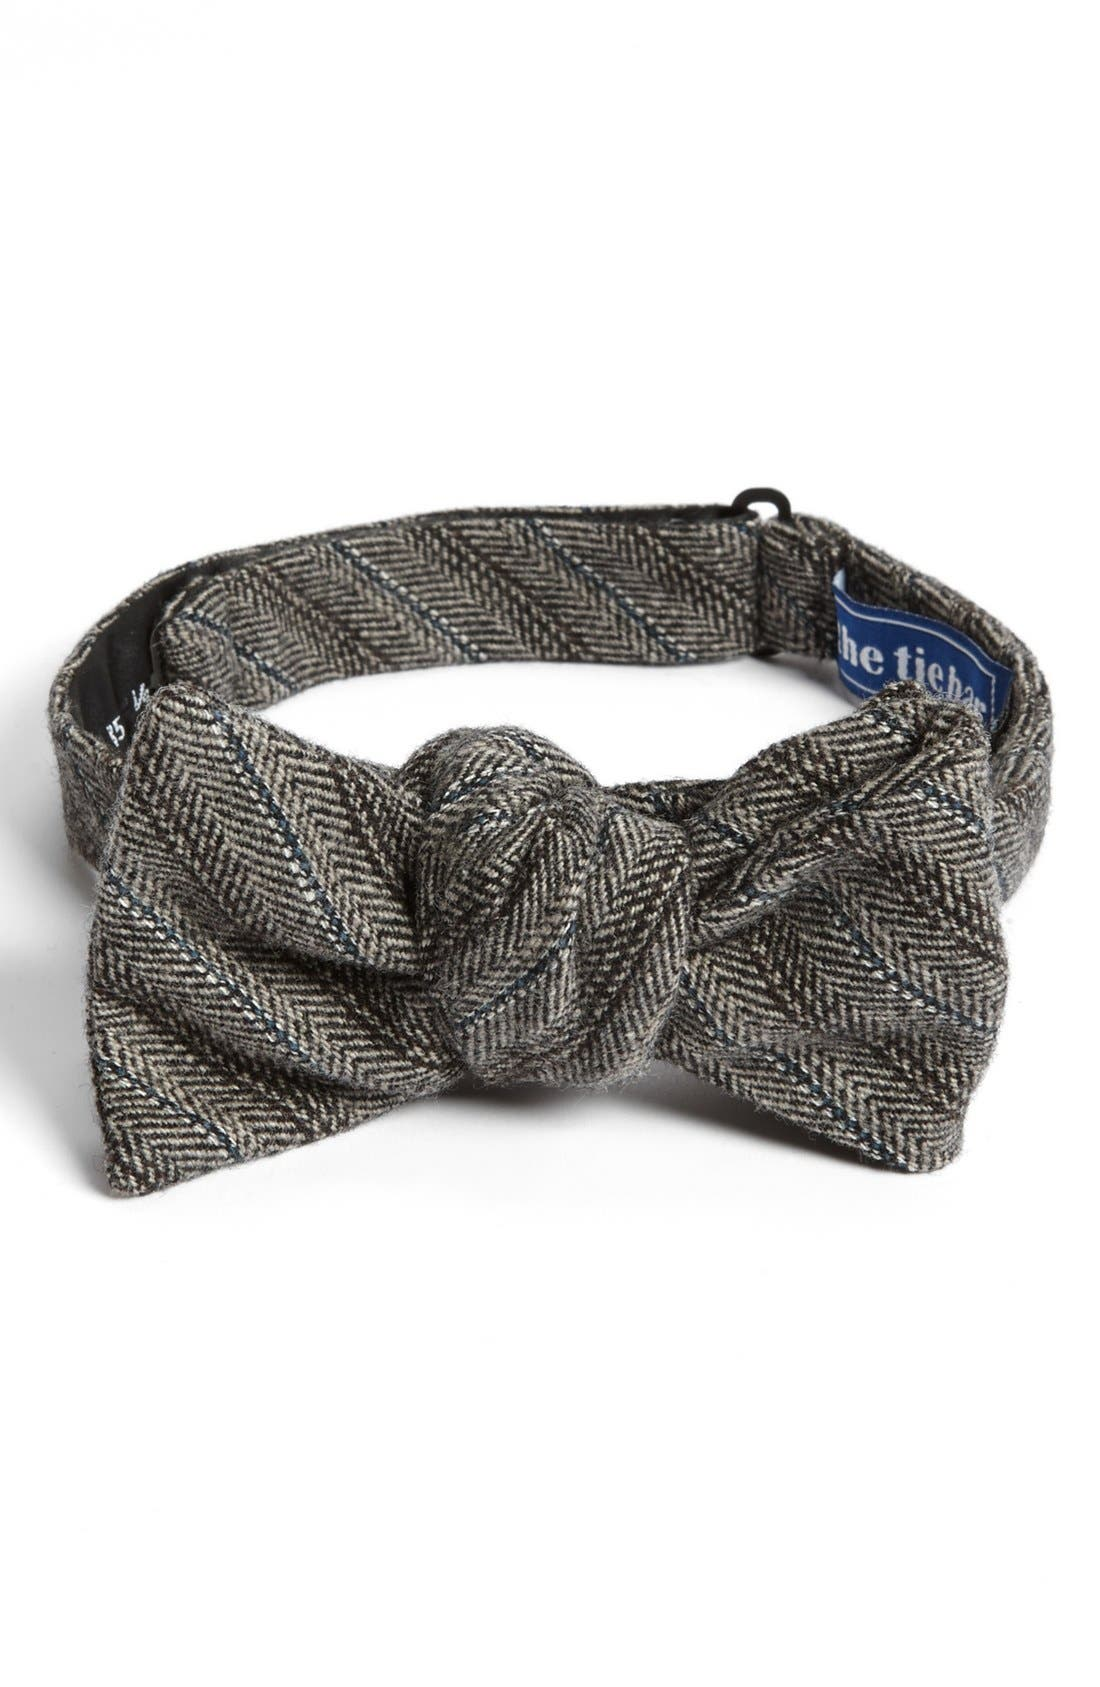 Alternate Image 1 Selected - The Tie Bar Wool Bow Tie